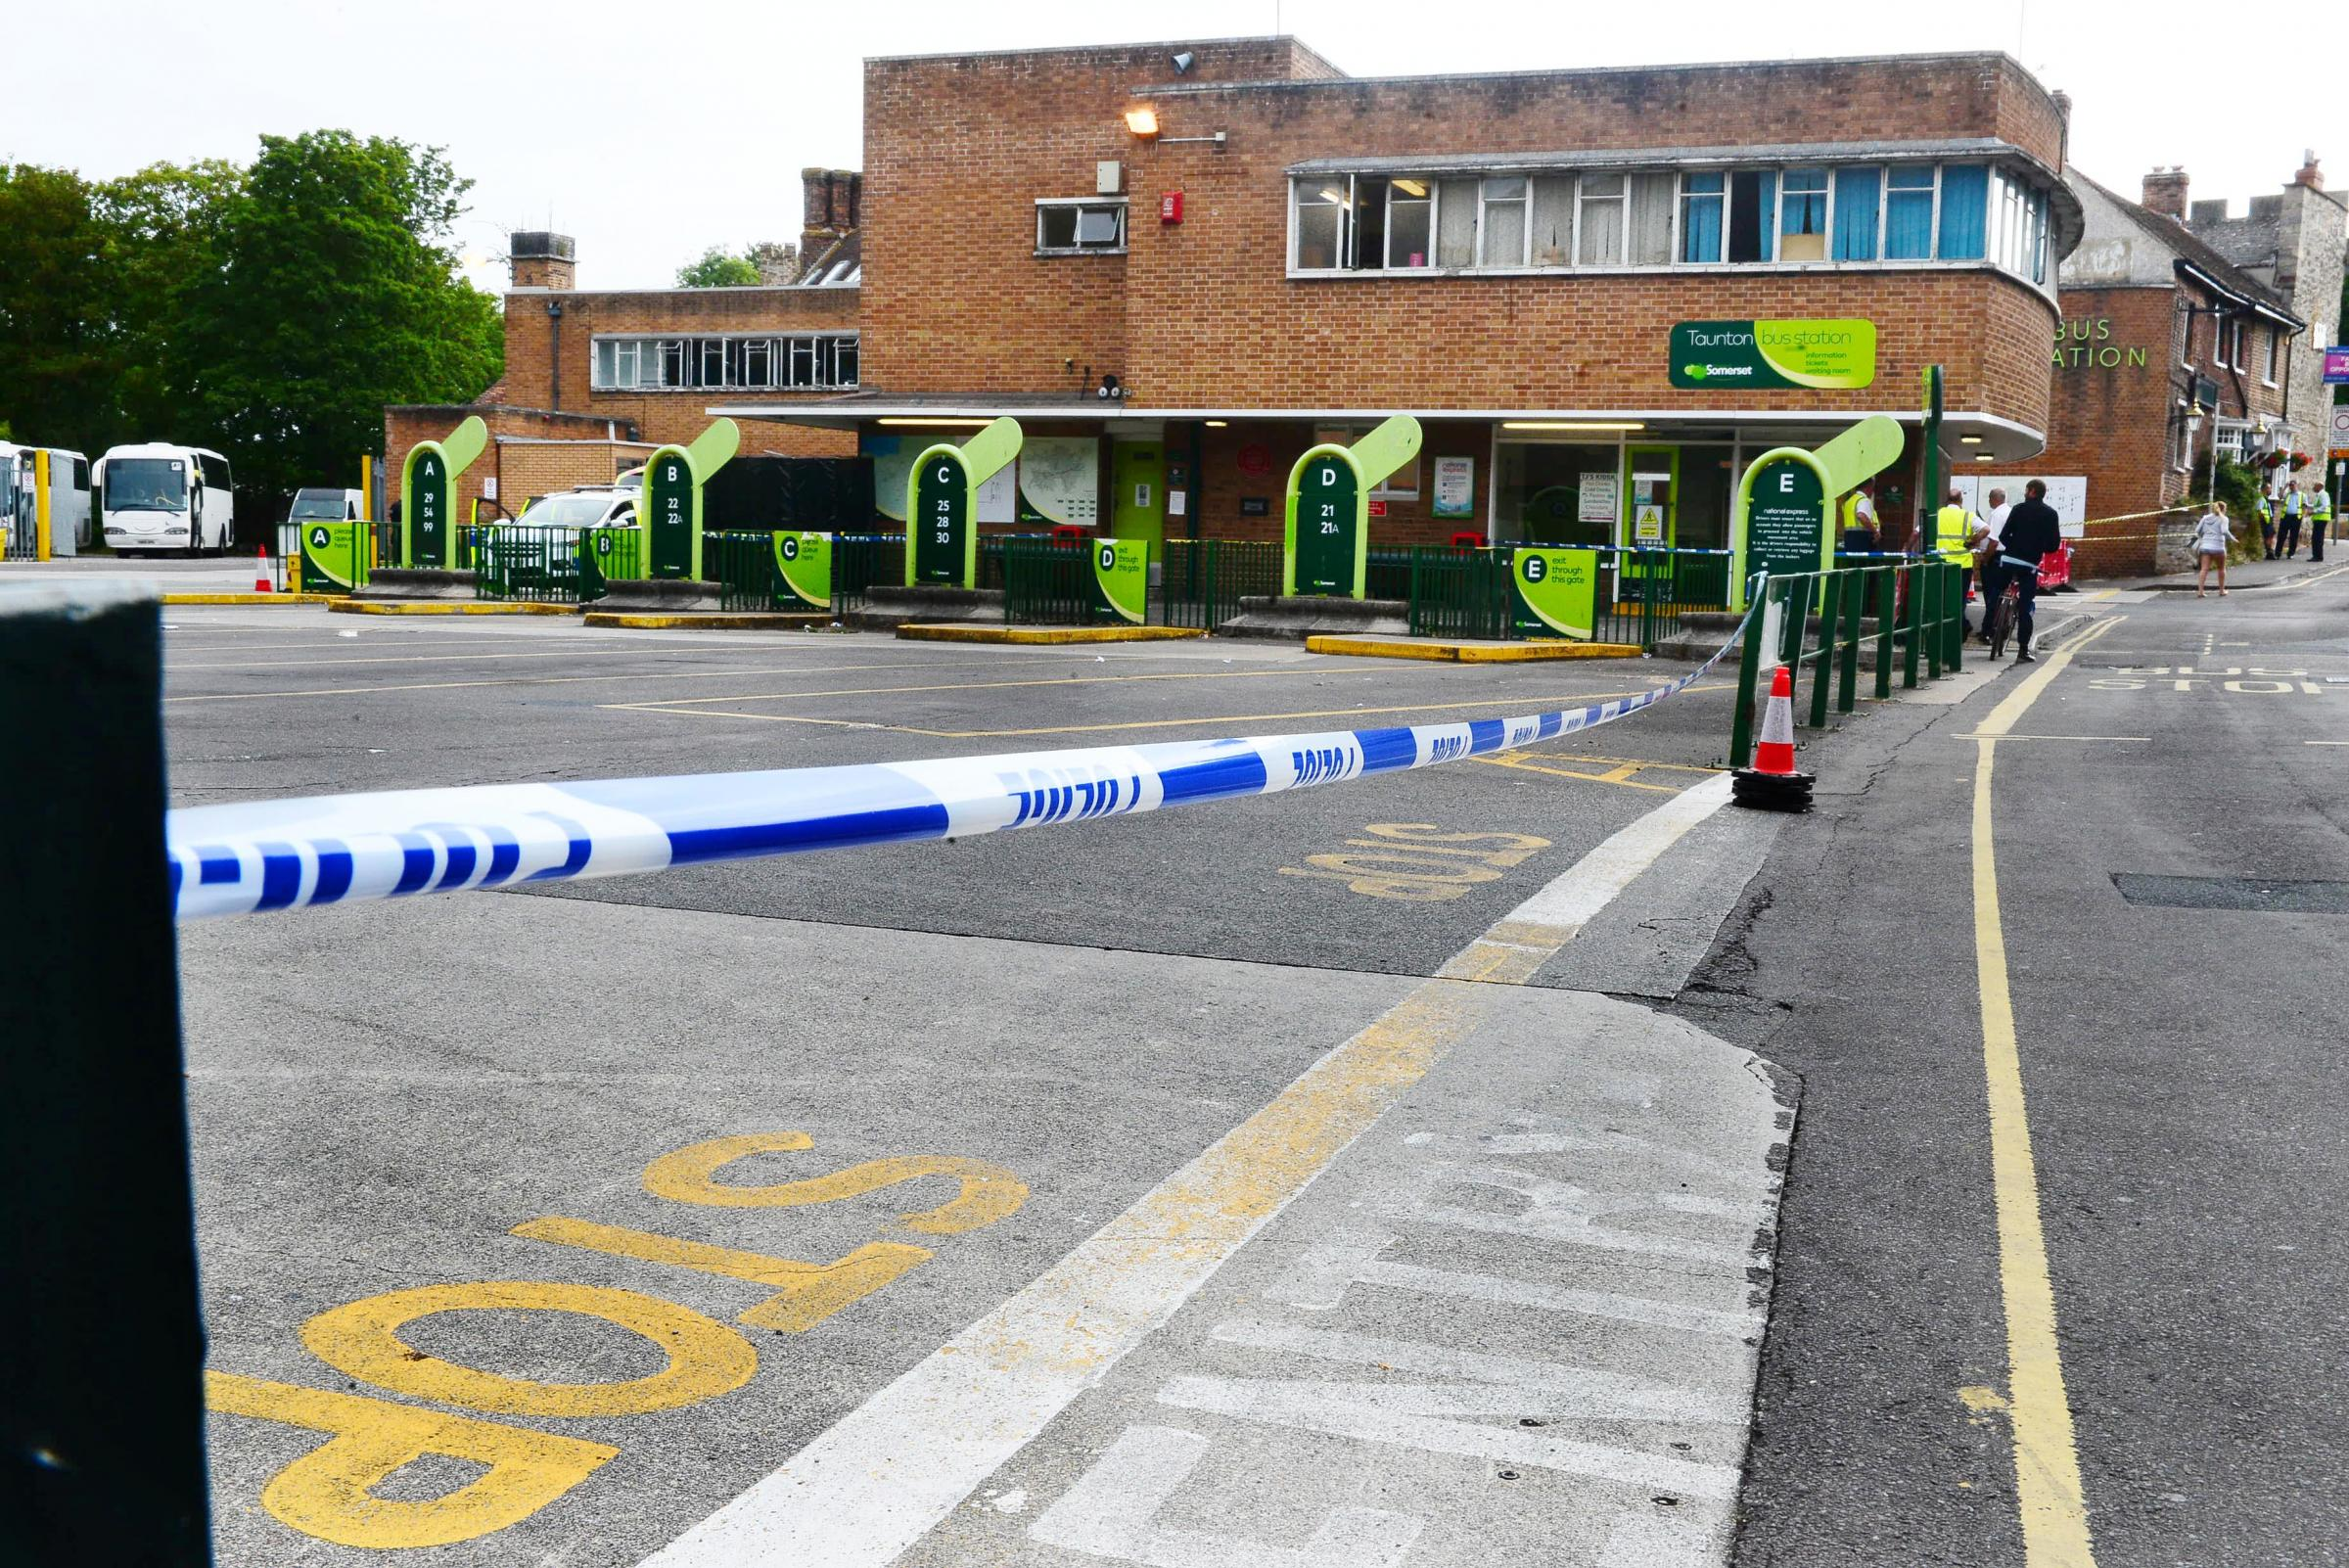 ARREST: Man, 36, arrested in connection with death of man near Taunton Bus Station